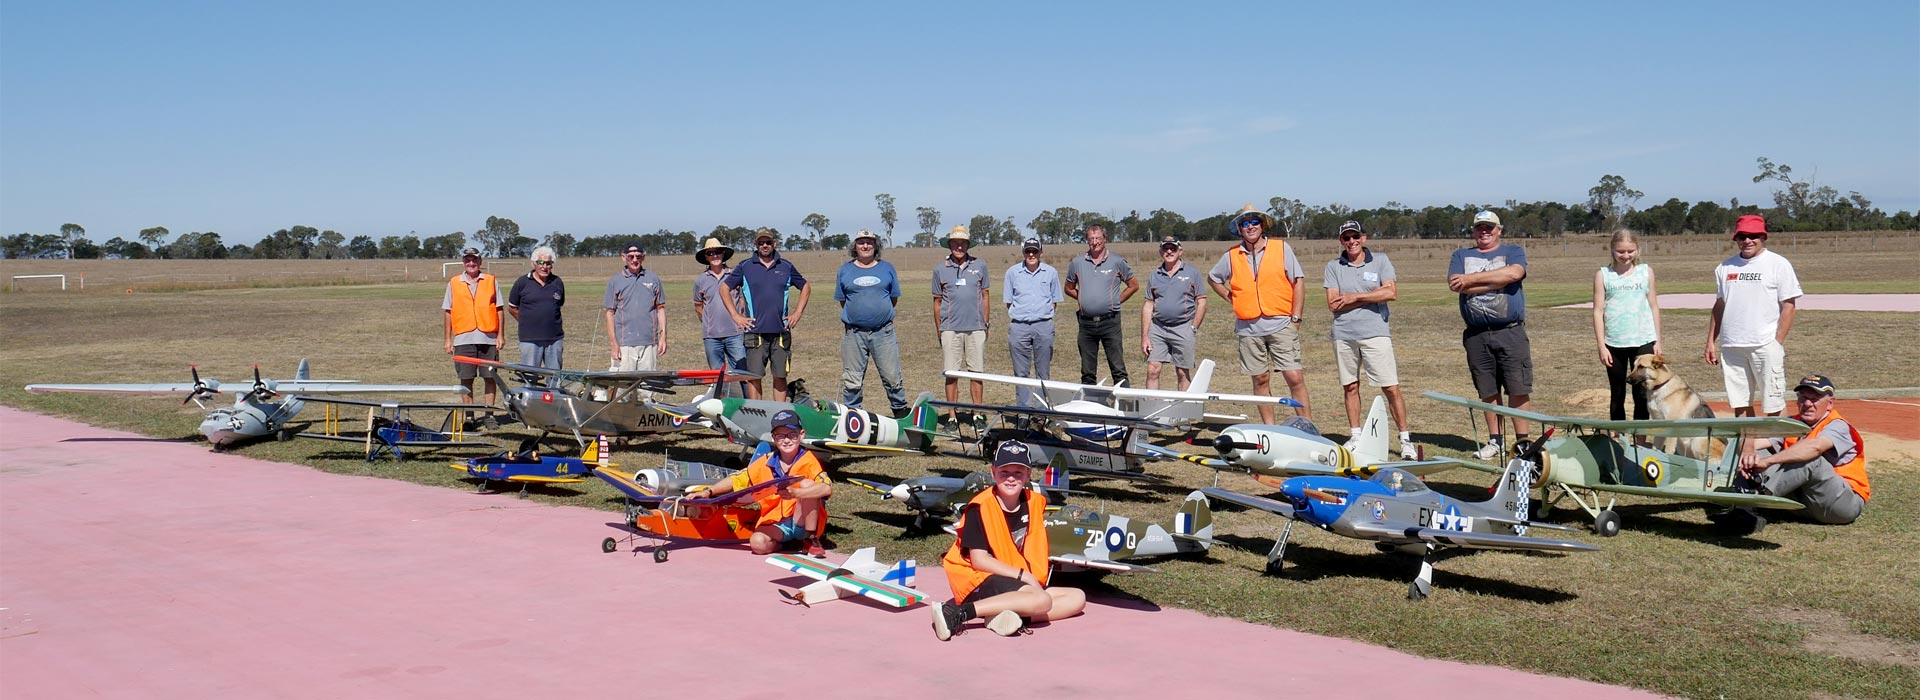 Bairnsdale And District Model Aero Club Members